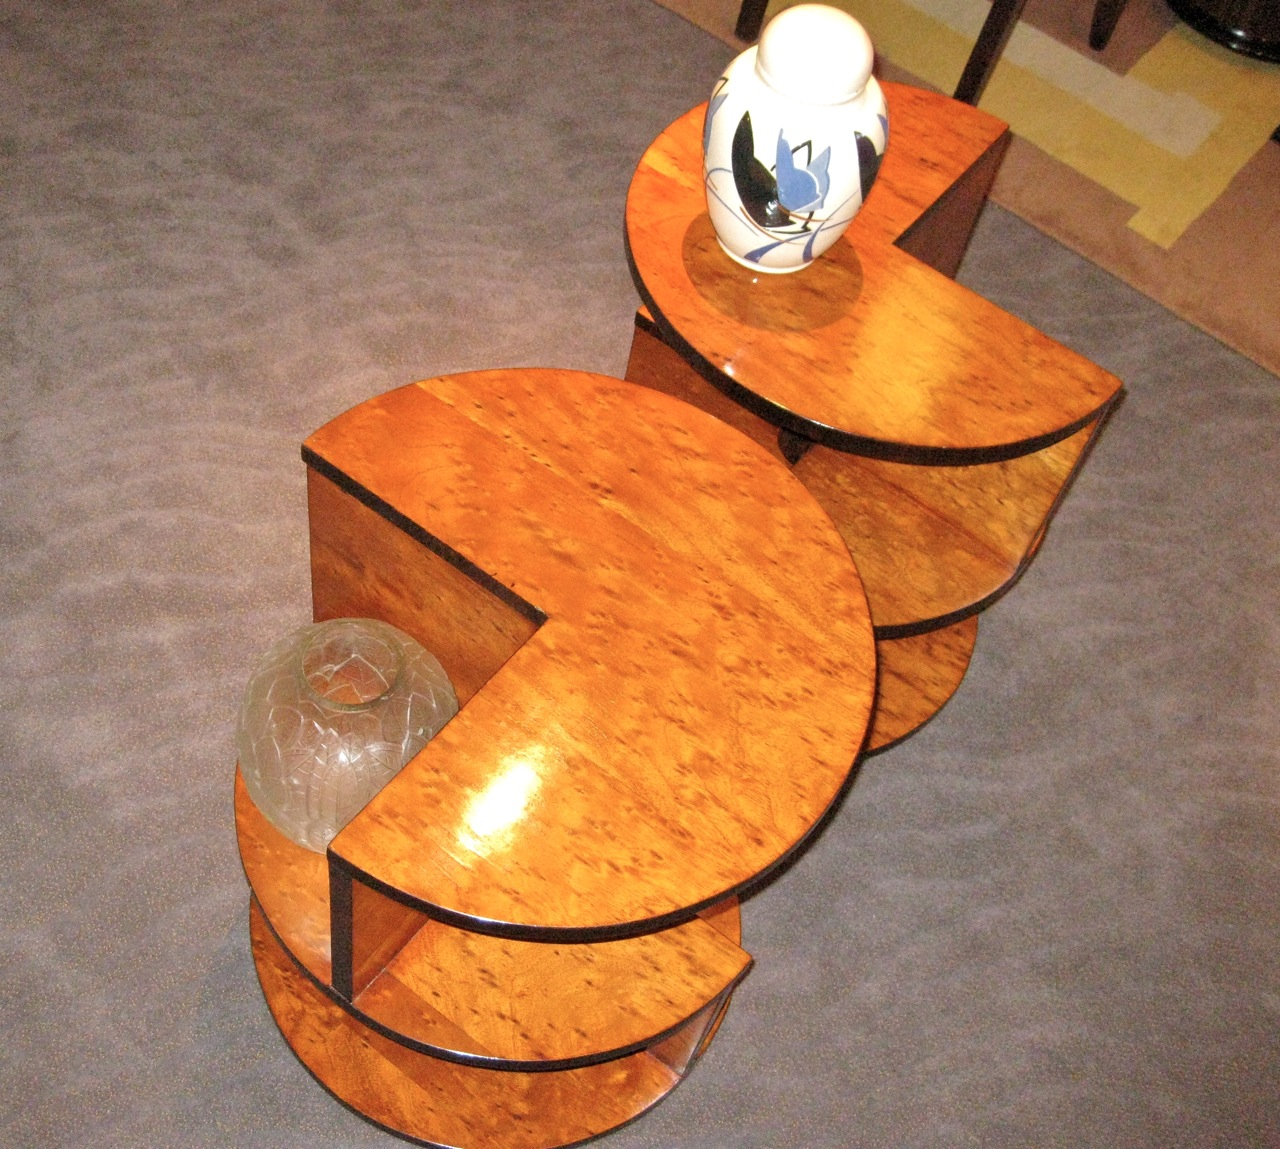 Art deco modernist side tables small tables art deco for Petite table deco